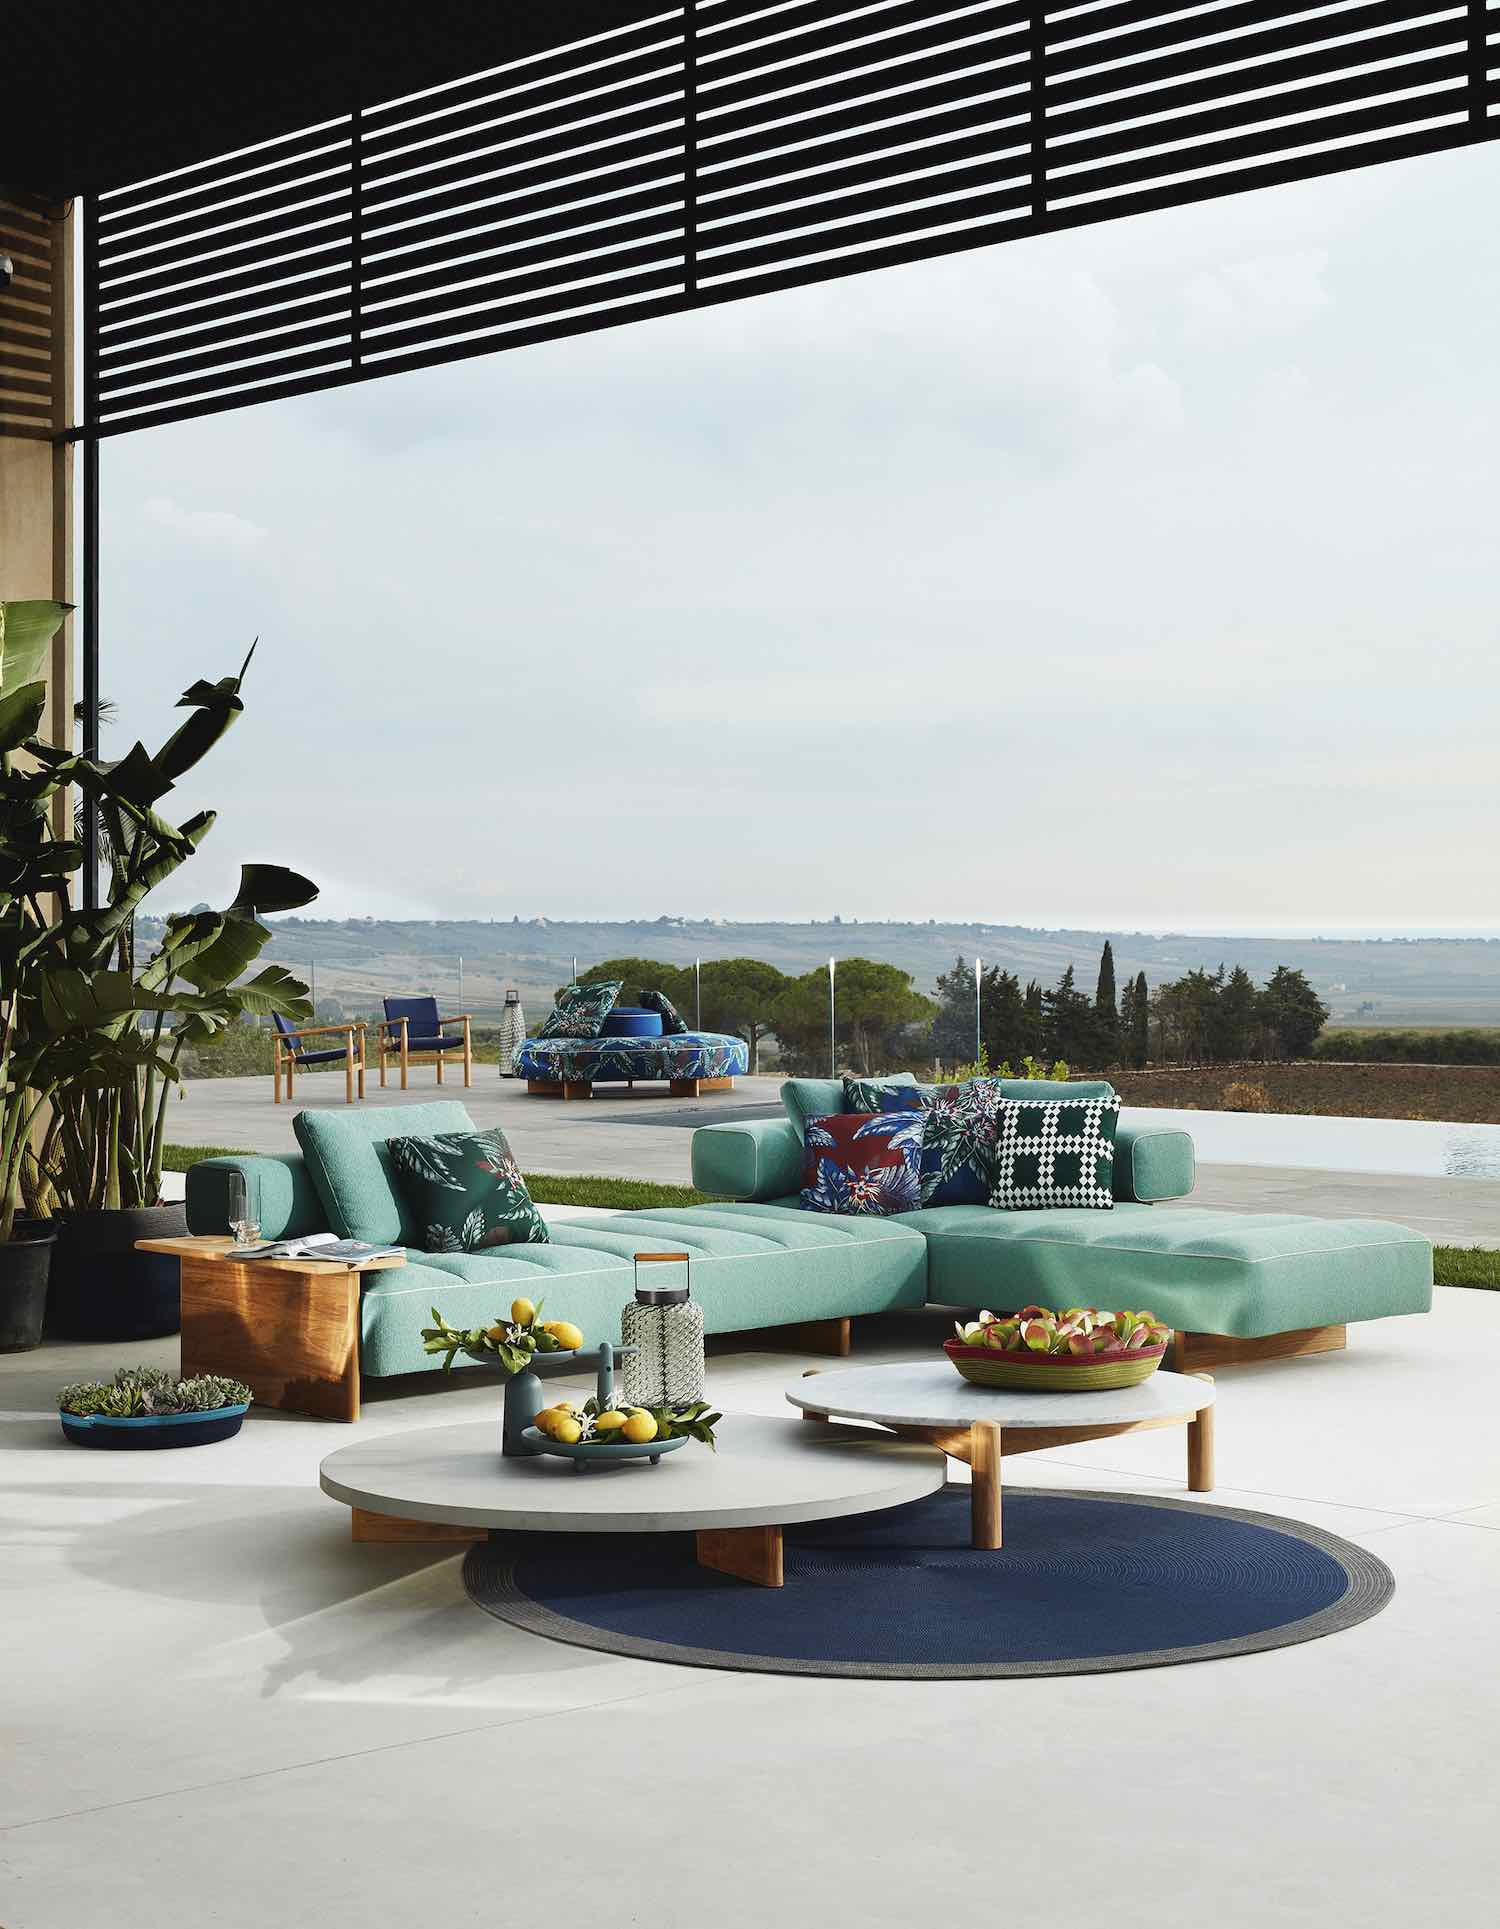 'The Cassina Perspective Goes Outdoor' collection - SAIL OUT by Rodolfo Dordoni - Photo by De Pasquale+Maffini.